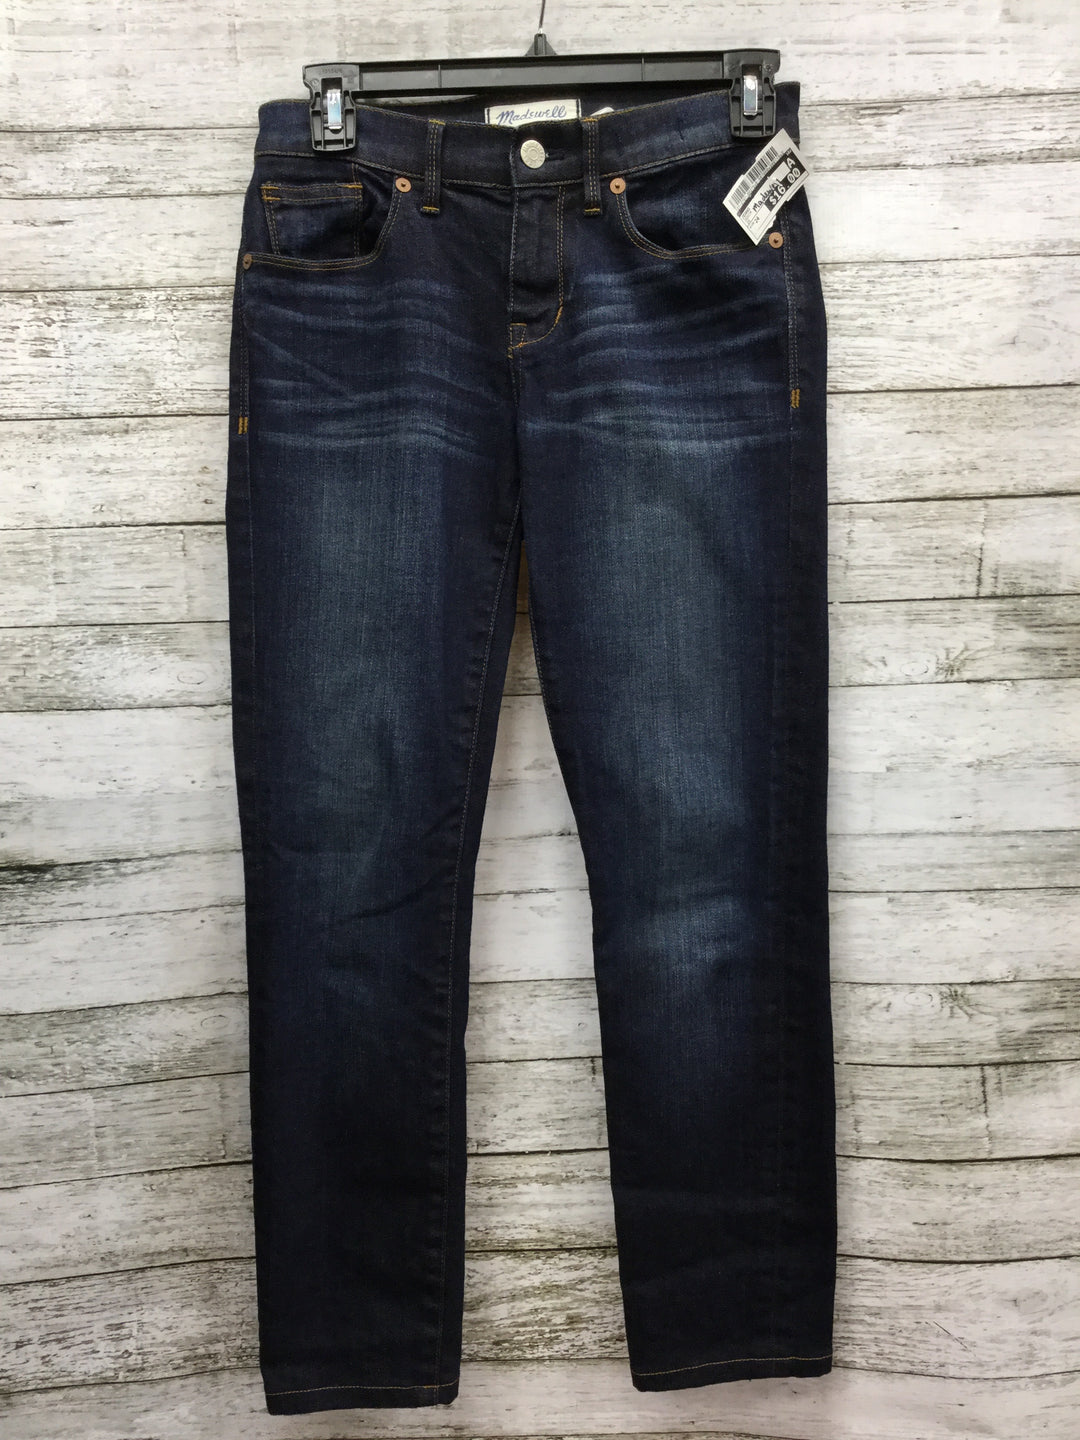 Primary Photo - BRAND: MADEWELL, STYLE: JEANS , COLOR: DENIM , SIZE: 24 , SKU: 127-2767-89276, , 24 INCH WAIST SKINNY JEANS.